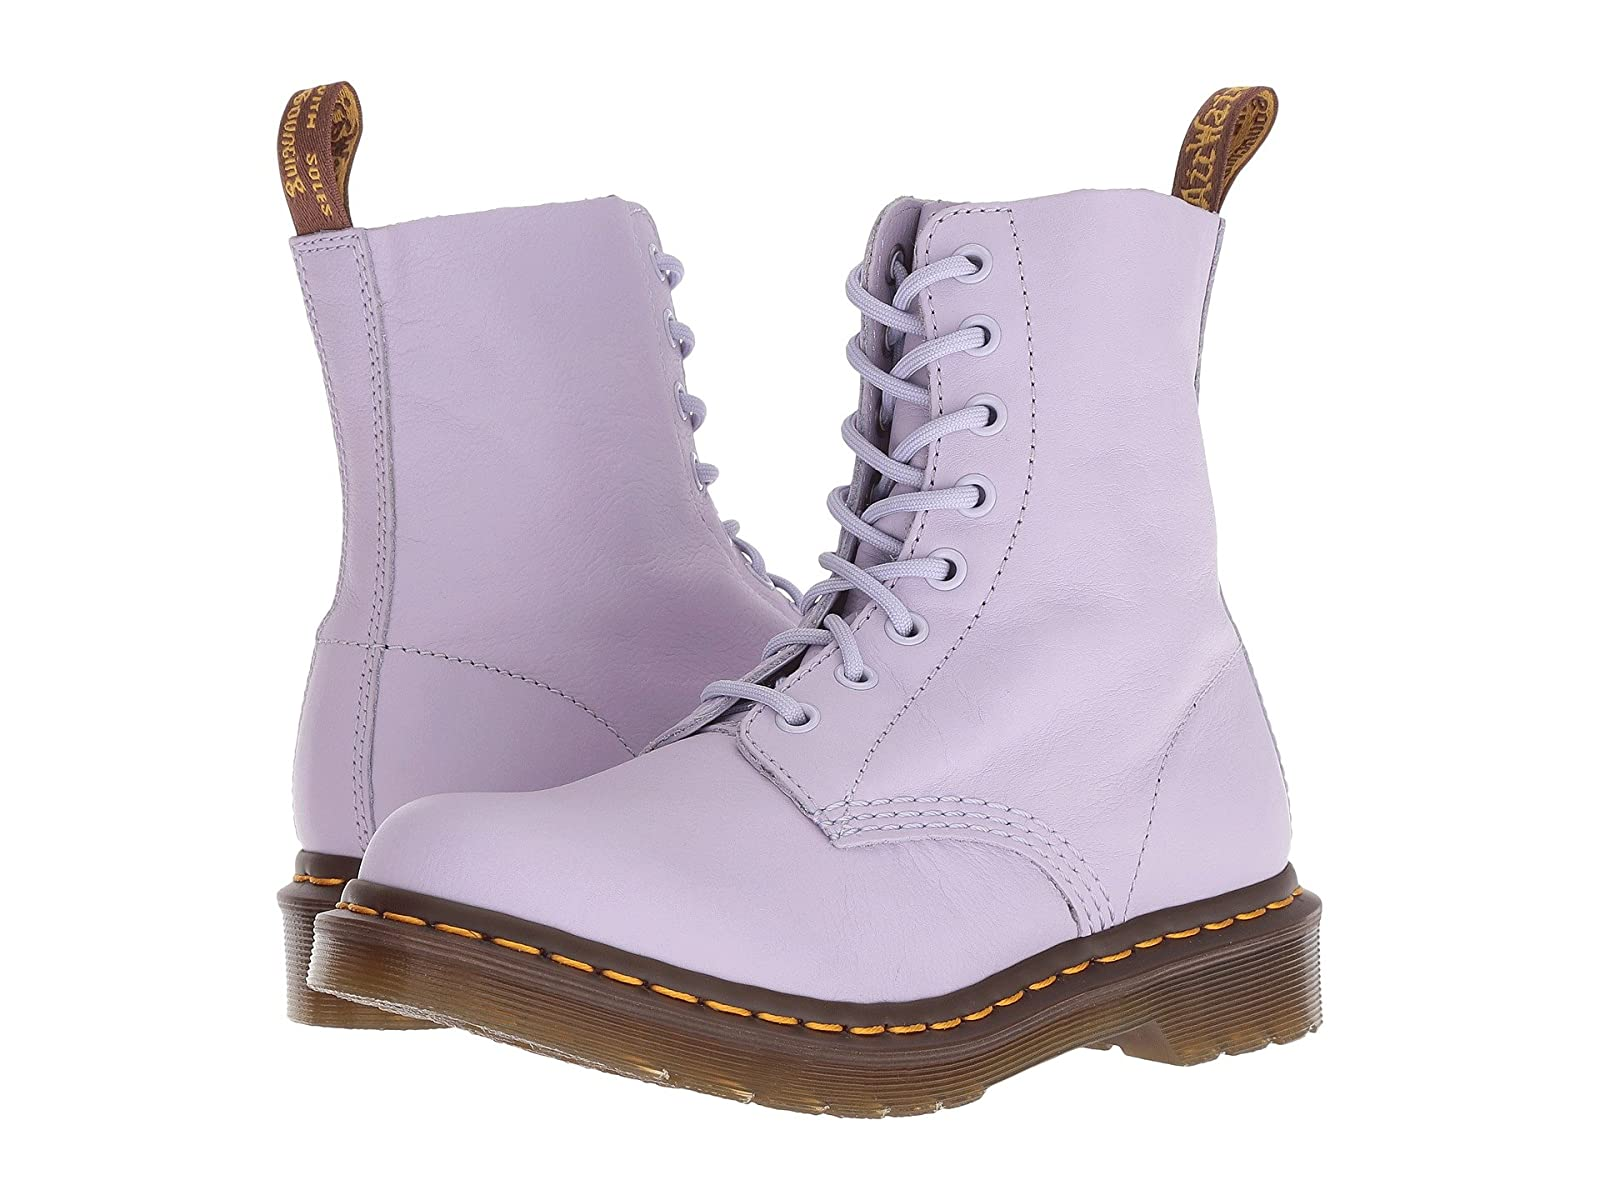 Dr. Martens PascalCheap and distinctive eye-catching shoes